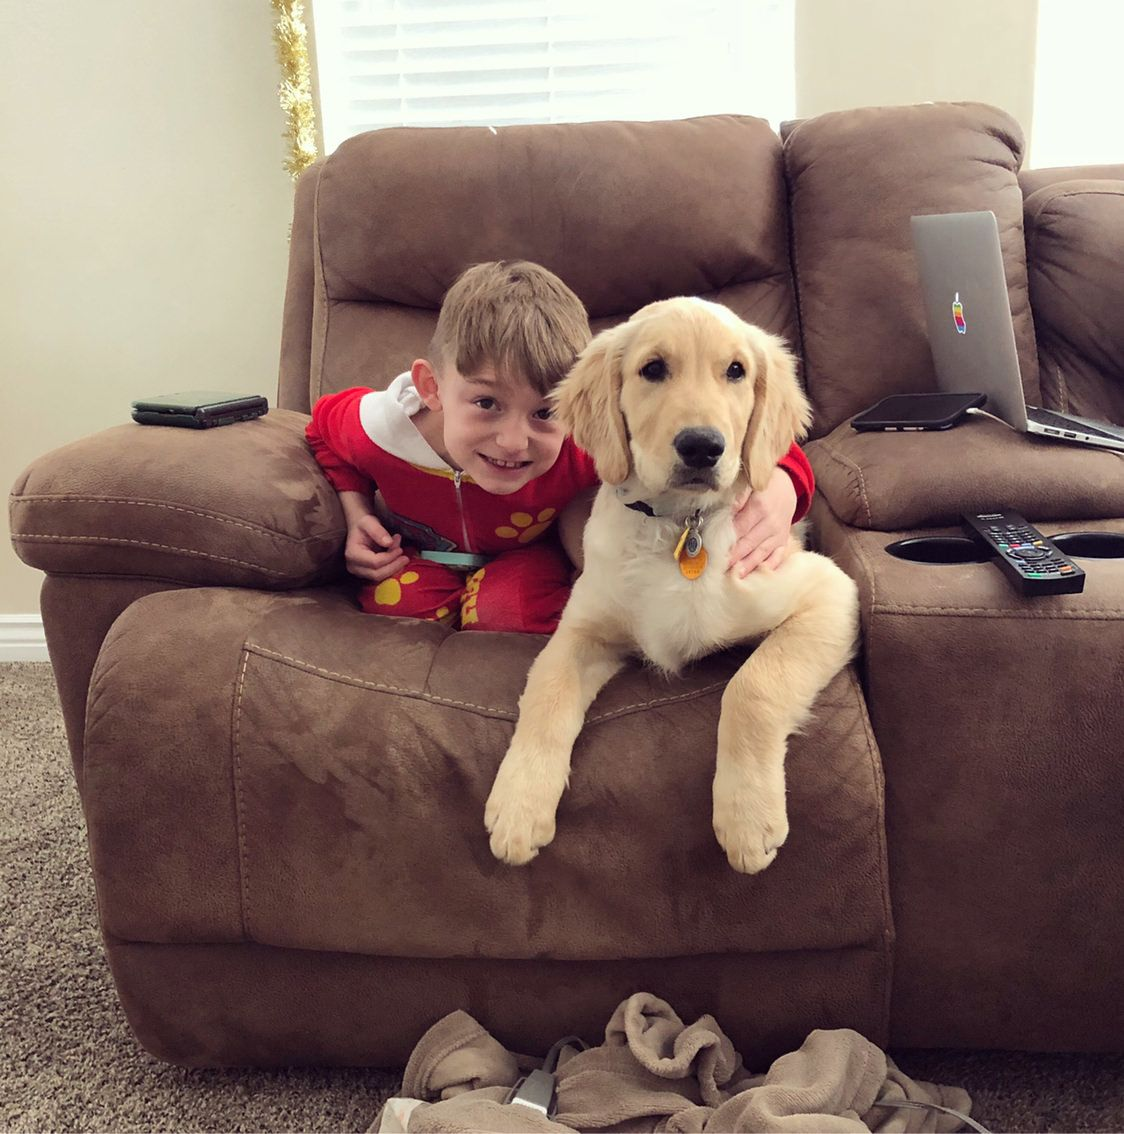 Just A Boy And His Pup Having A Lazy Sunday Happy Sunday Everyone Happy Sunday Everyone Pup Lazy Sunday